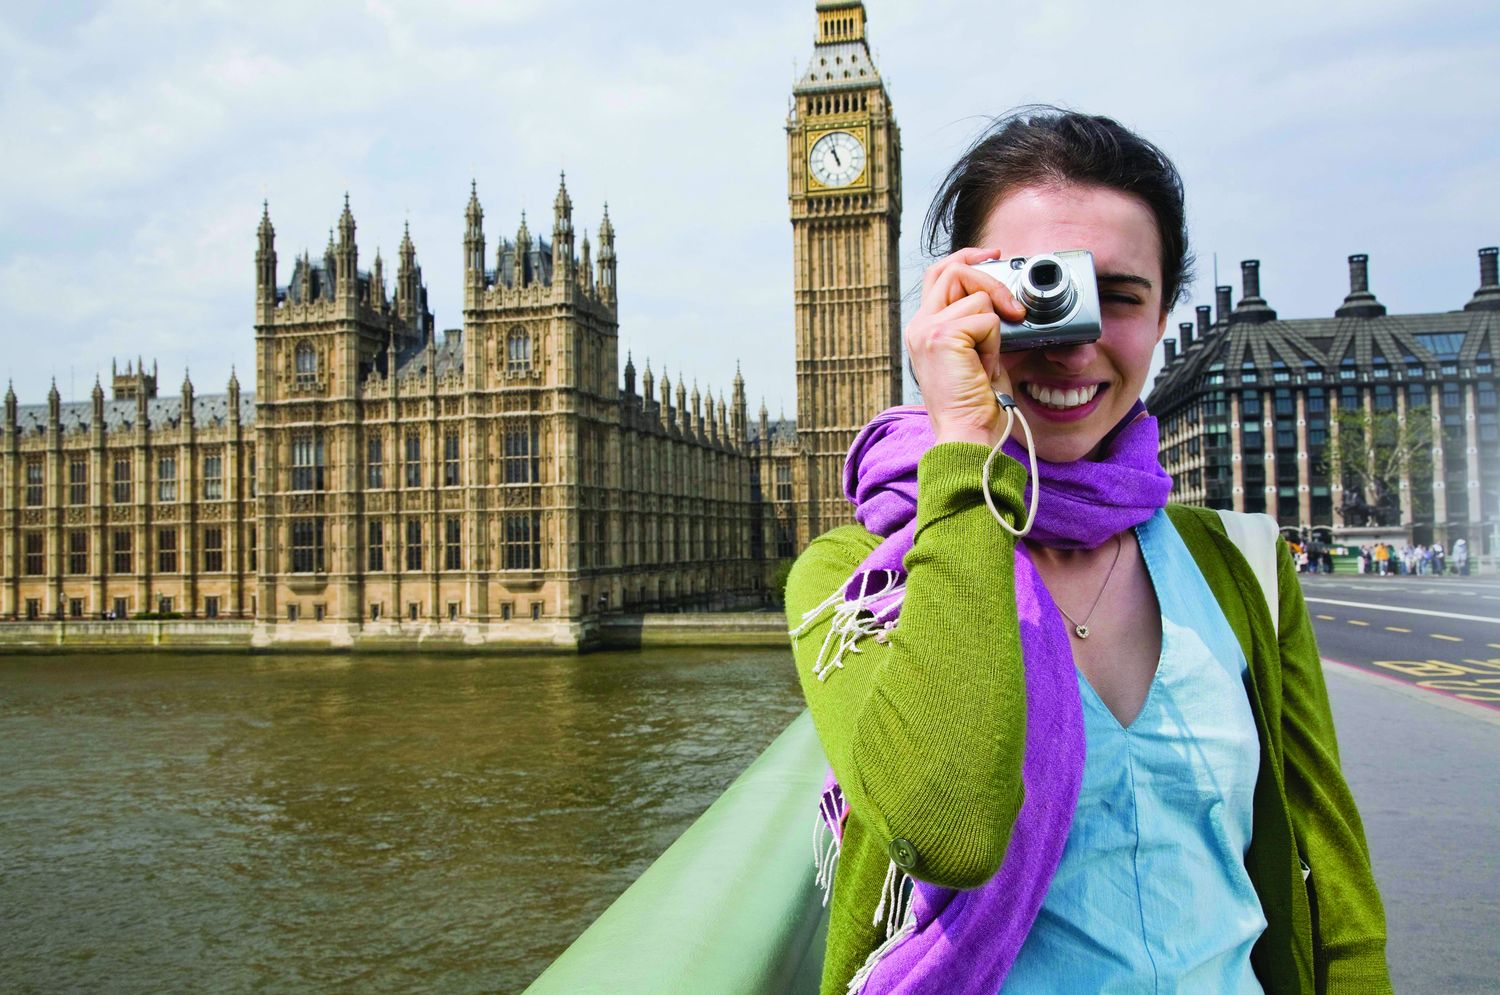 Tourist with digital camera by Big Ben, London, England